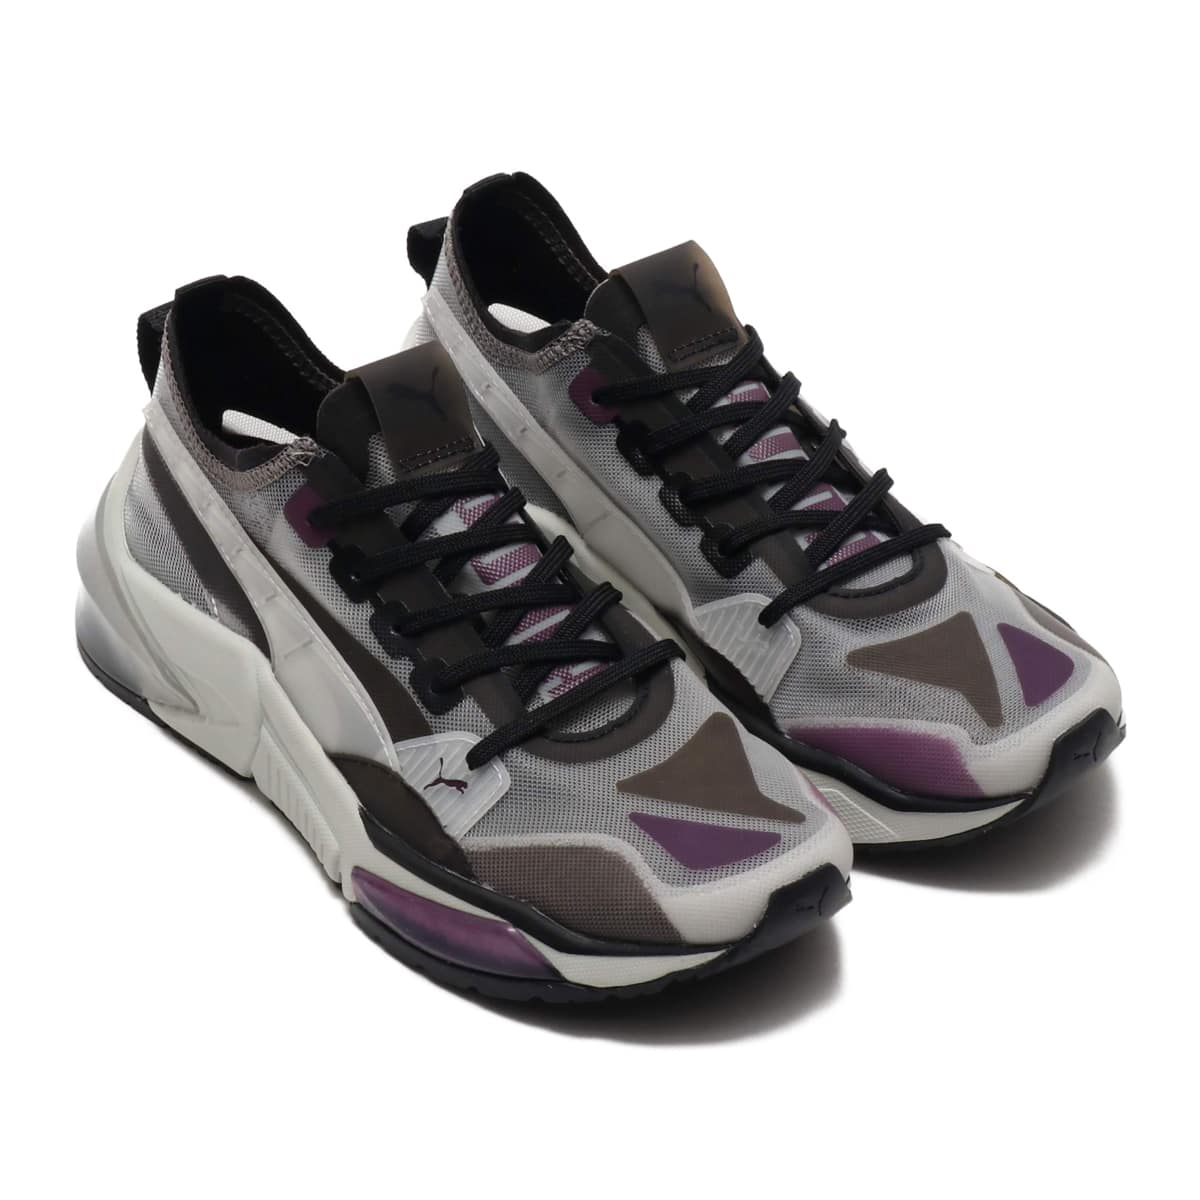 PUMA LQDCELL OPTIC SHEER WMNS GRAY VIOLET-P 19FA-S_photo_large